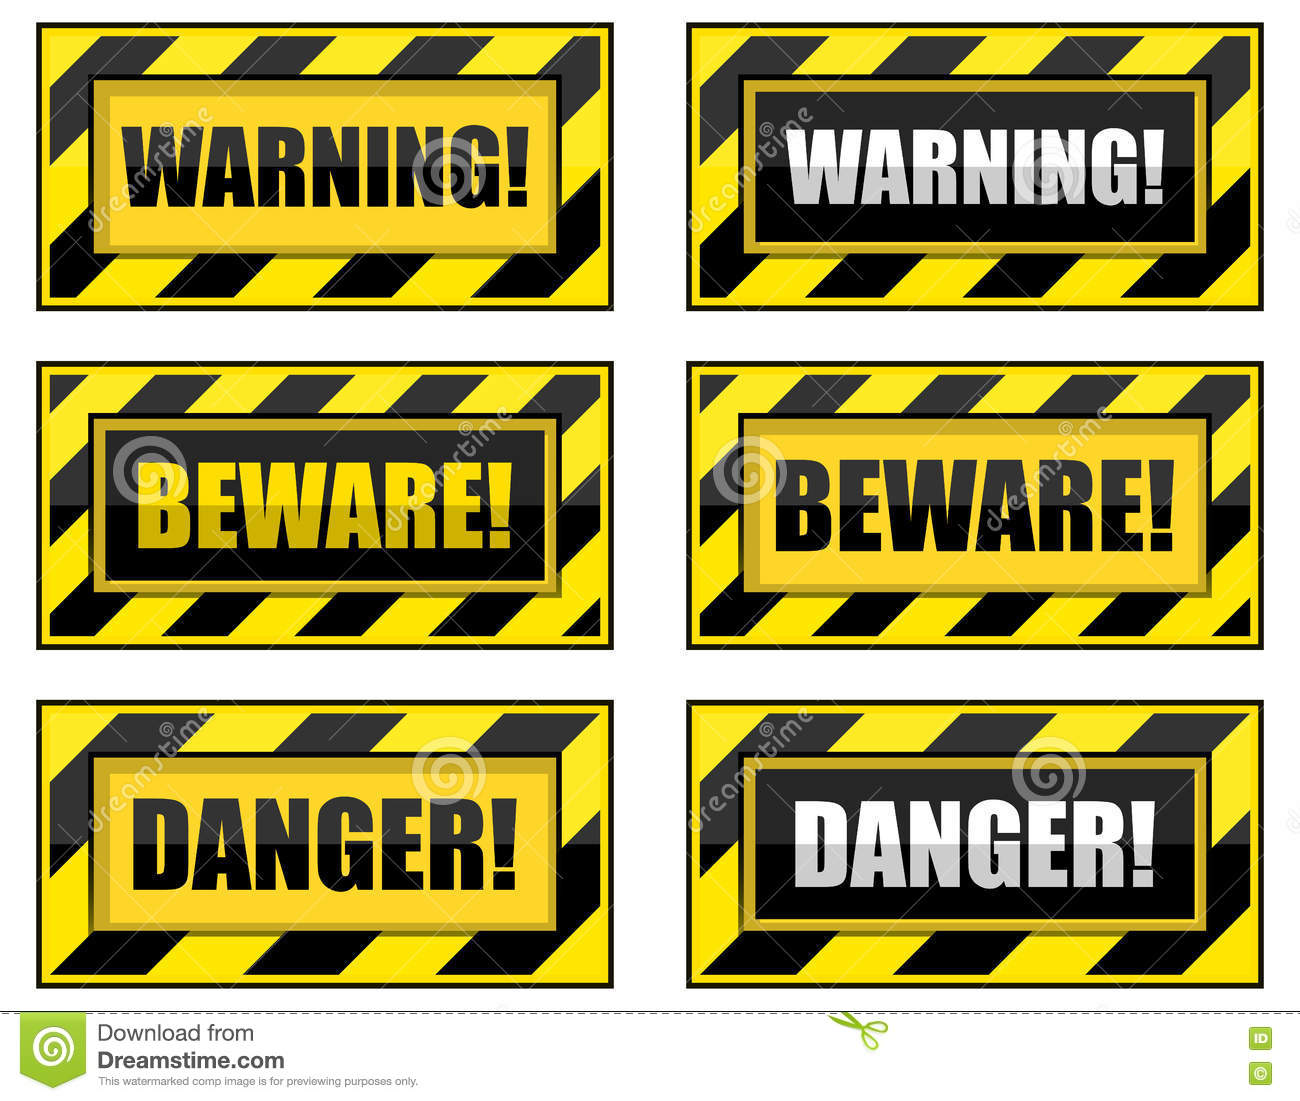 Striped Warning Signs Stock Photo  Image 74801104. Carpentry Trade Schools Electric Insurance Ge. Union Gospel Mission Dental Clinic. Exterminator San Francisco How To Buy Houses. Schools For Massage Therapy Free Job Alerts. Emergency Response Times Pre Roll Advertising. University Of Northern Colorado Business School Ranking. Voip Service Providers List Tea Tree Allergy. Causes Post Nasal Drip M S Financial Planning